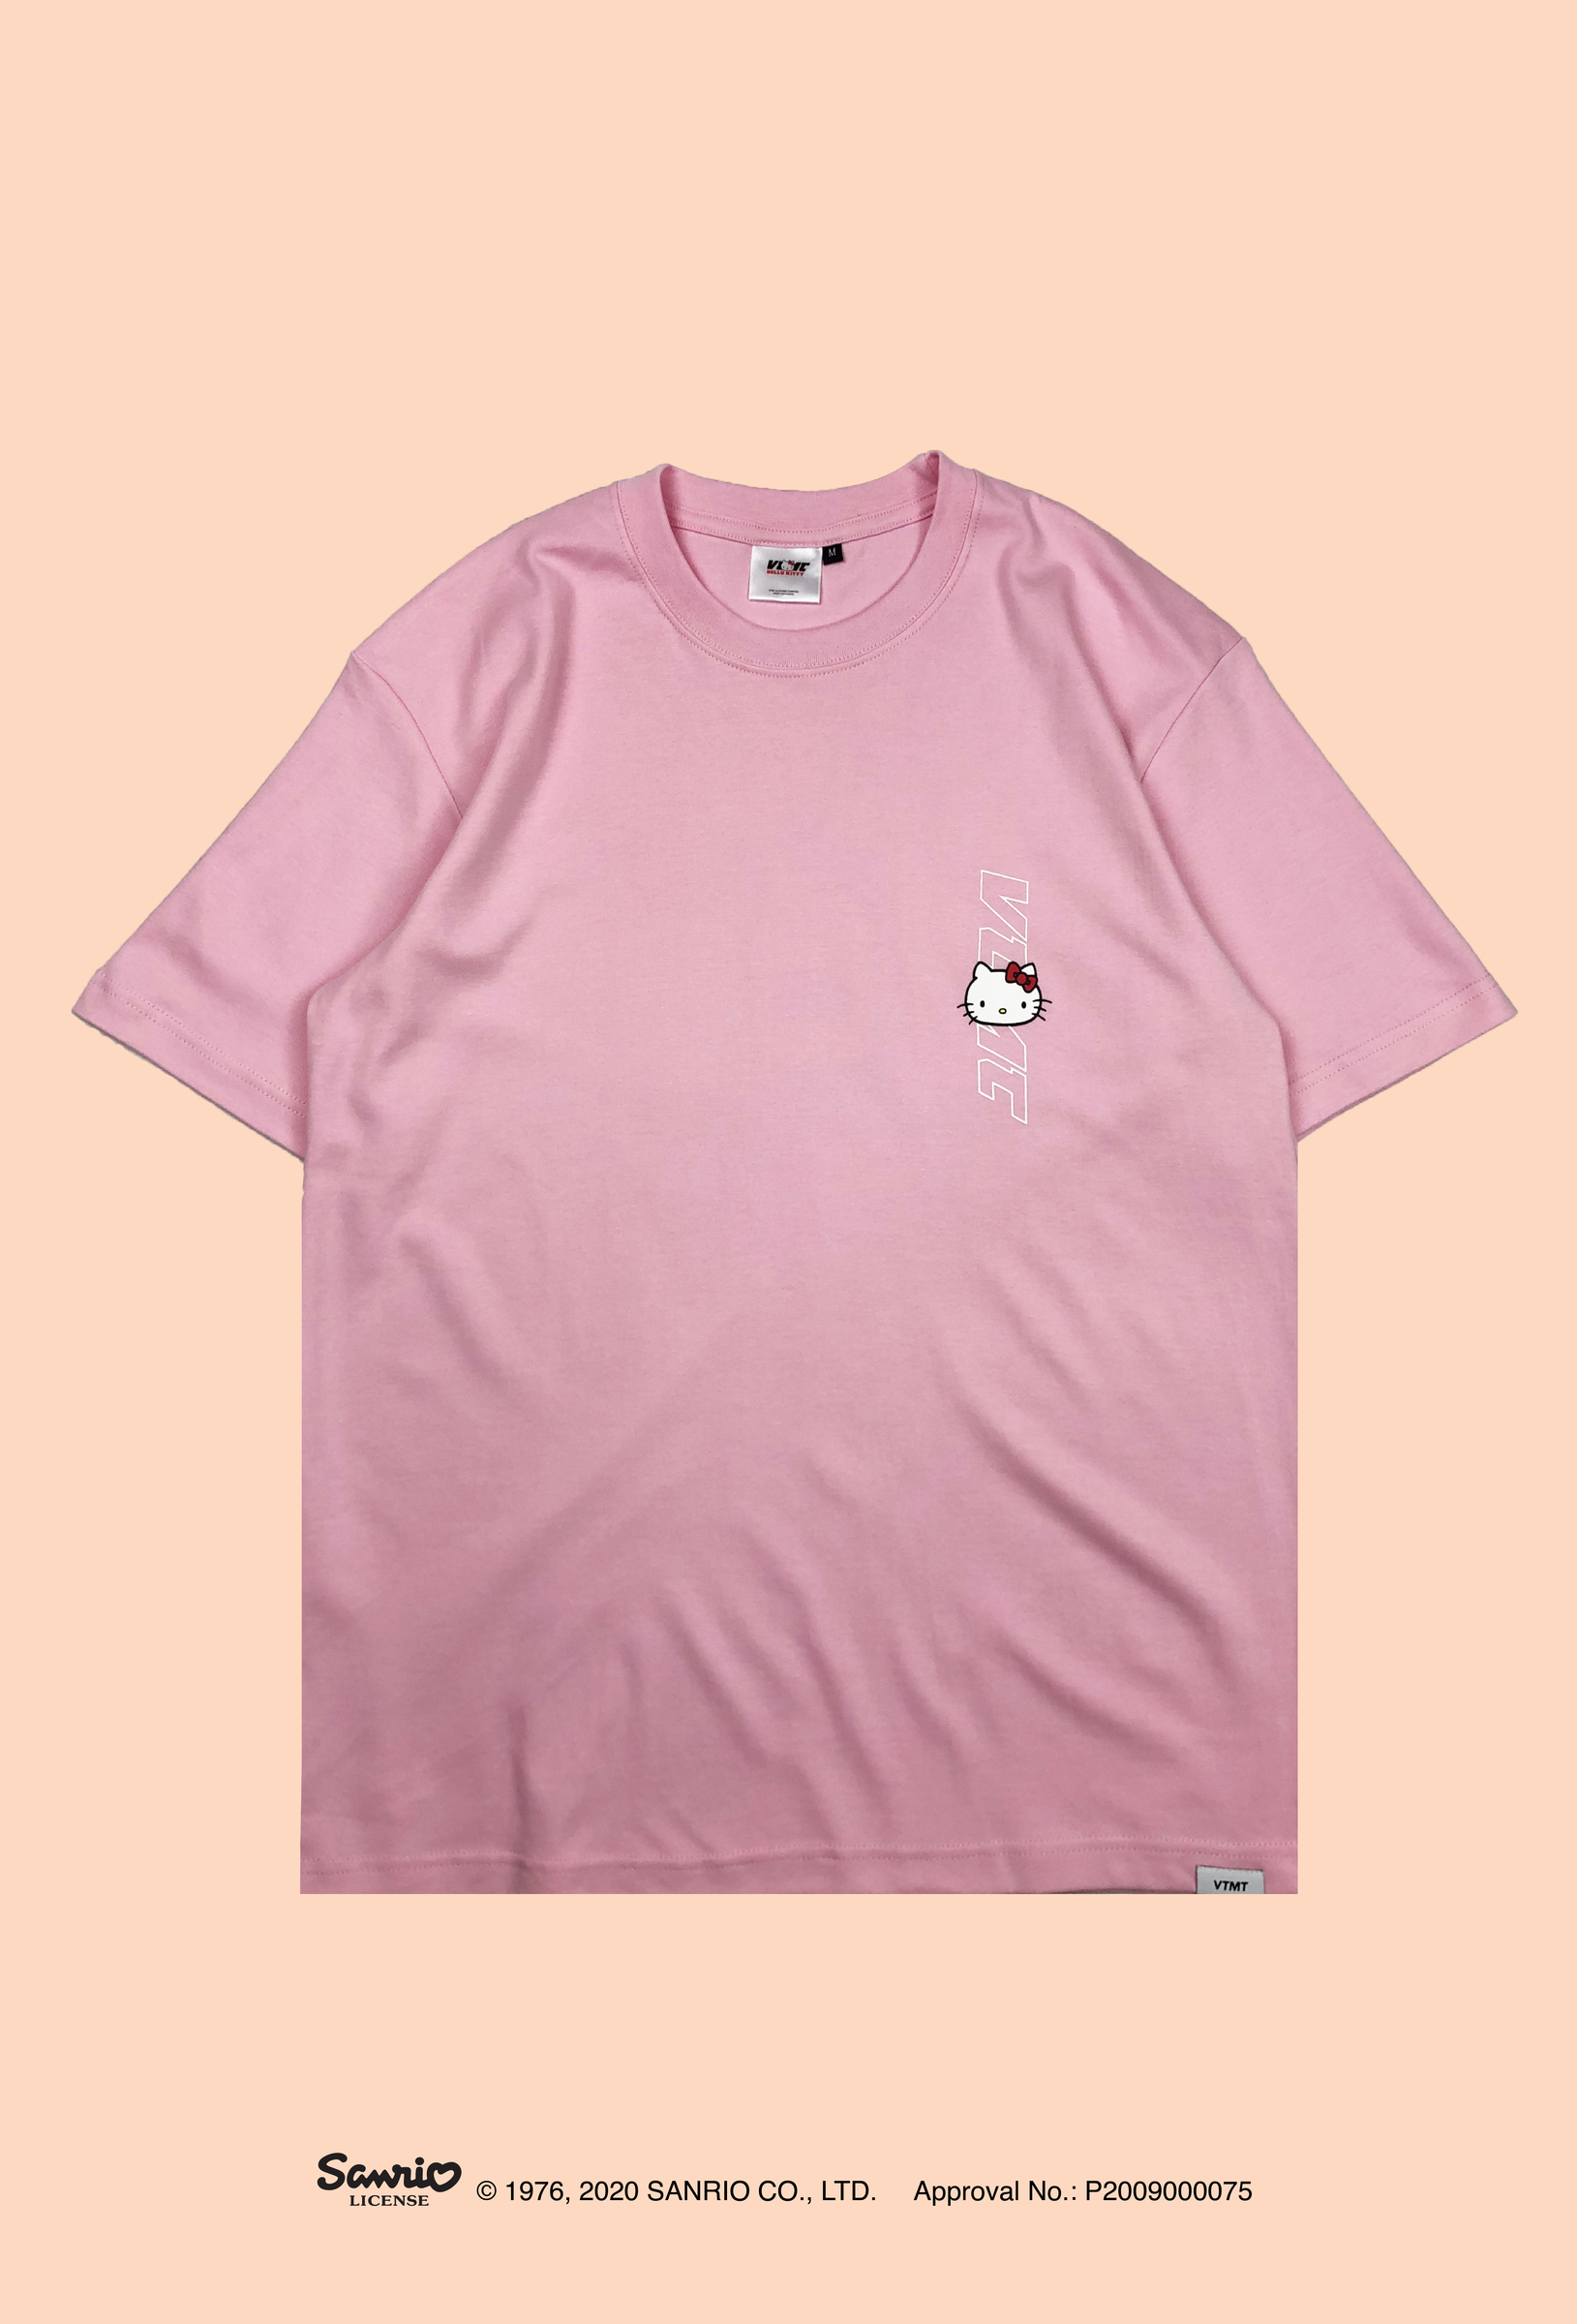 Milk Bottle Tee Pink front-01.jpg